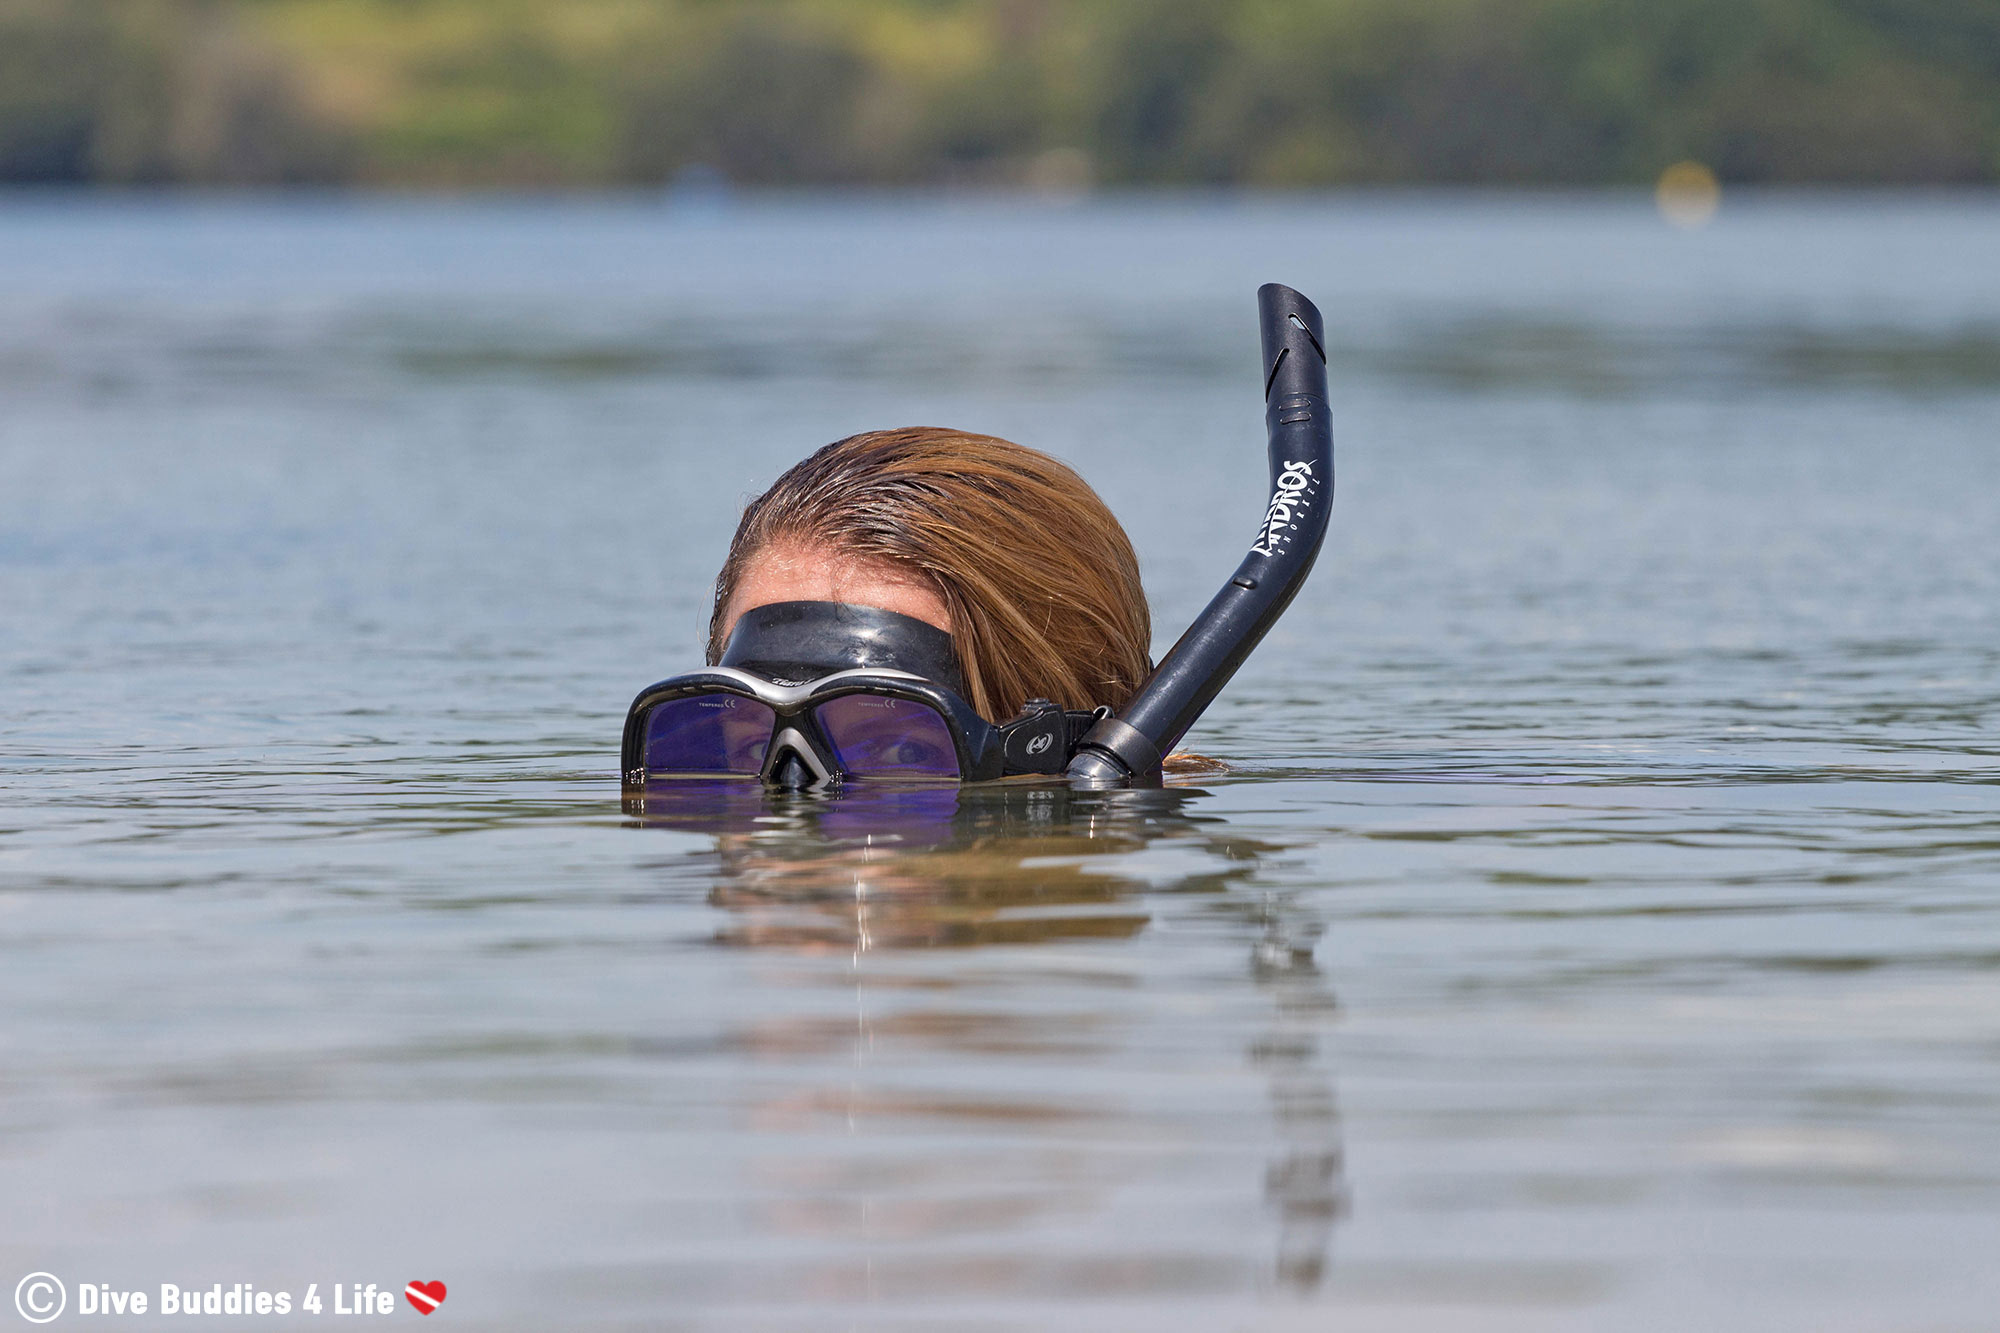 Ali With Snorkel Looking At Camera In A Lake